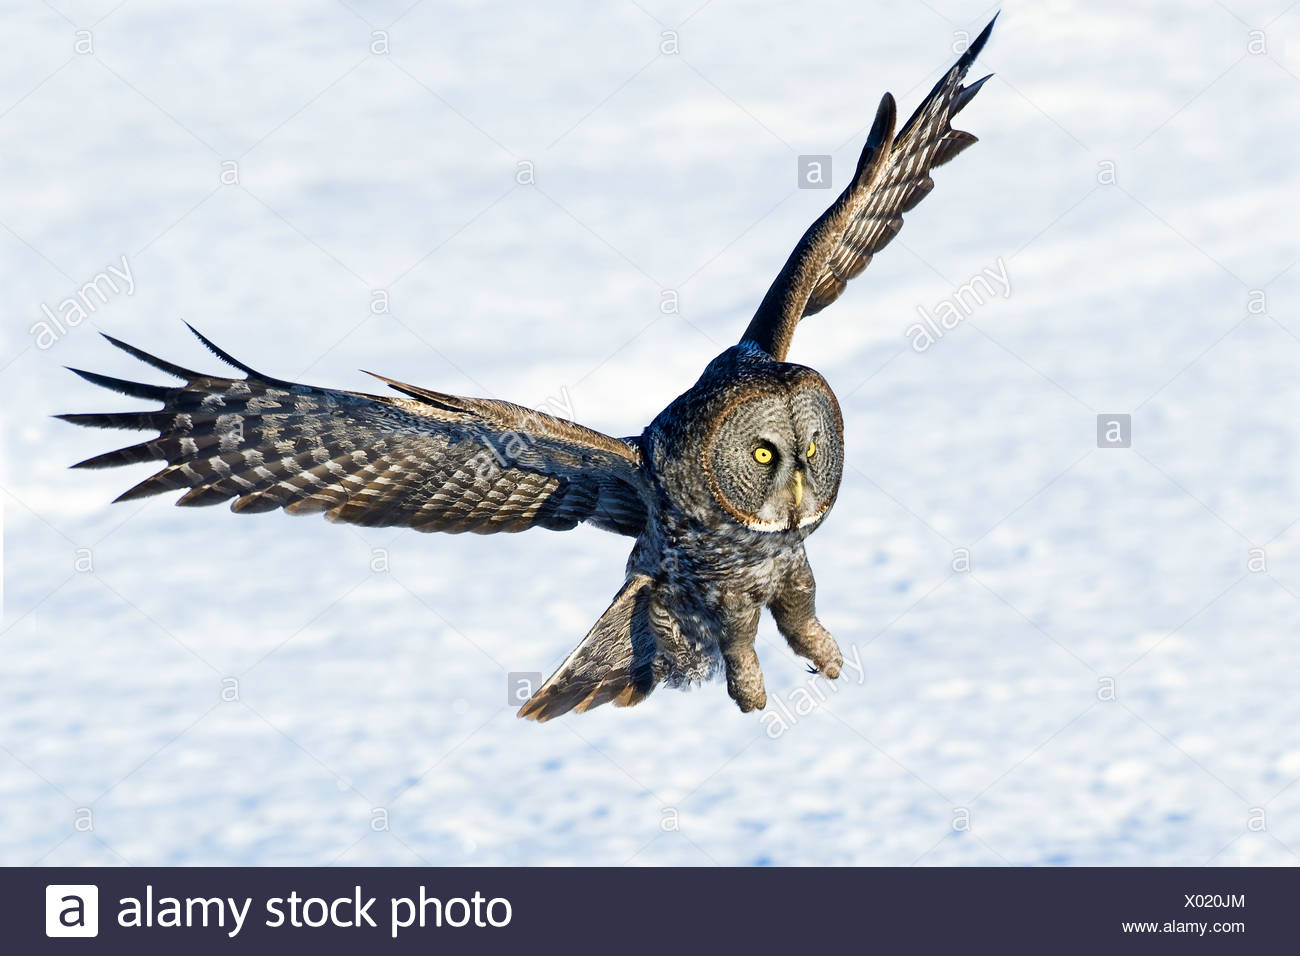 Hunting great gray owl (Strix nebulosa), boreal forest, northern Alberta, Canada - Stock Image